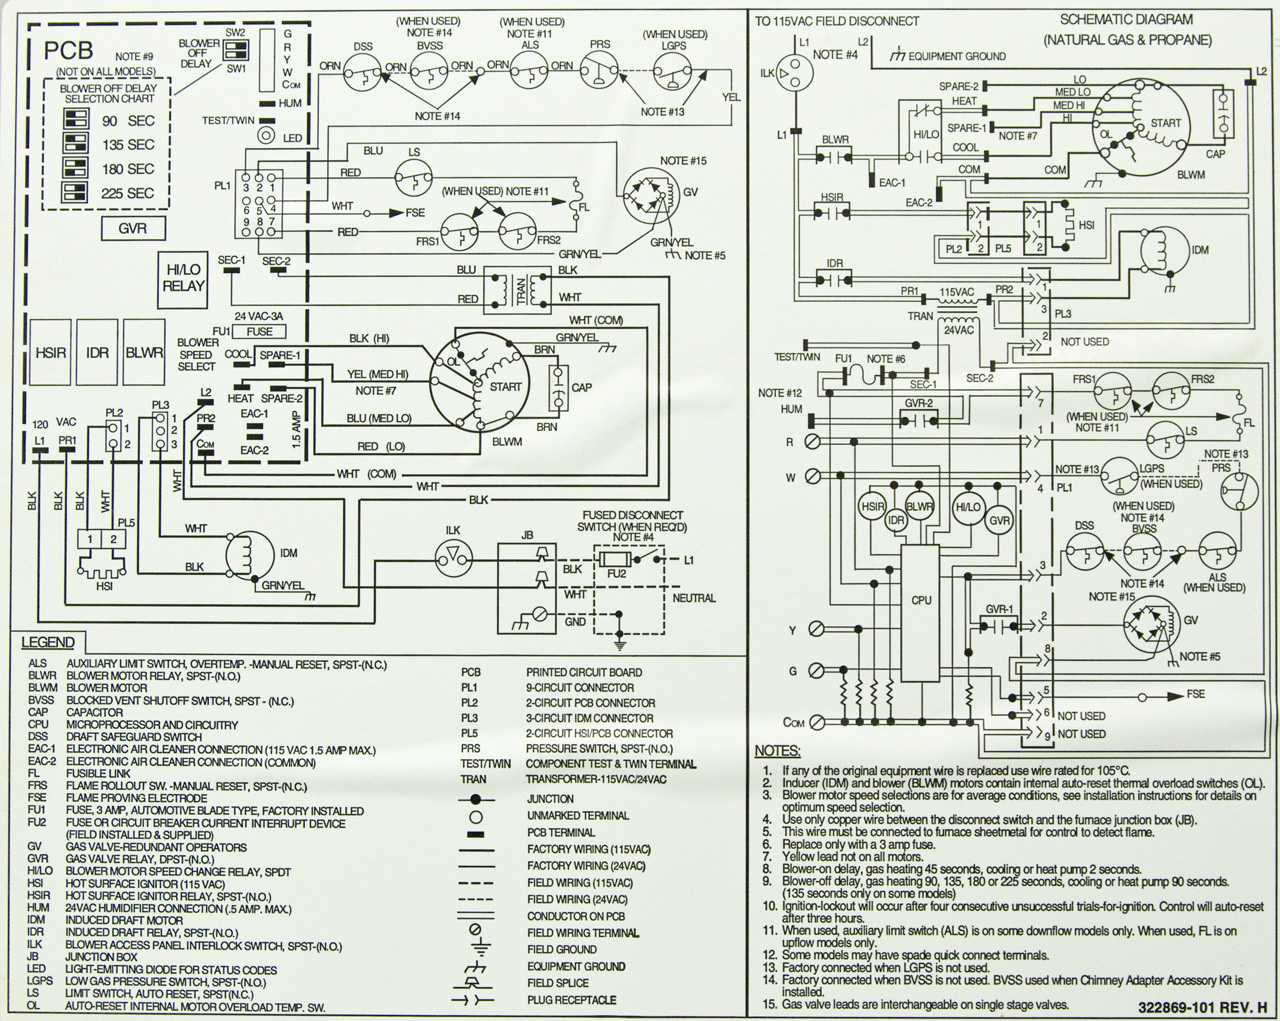 bard heat pump wiring diagram usb to parallel printer cable hvac diagrams emerson motors